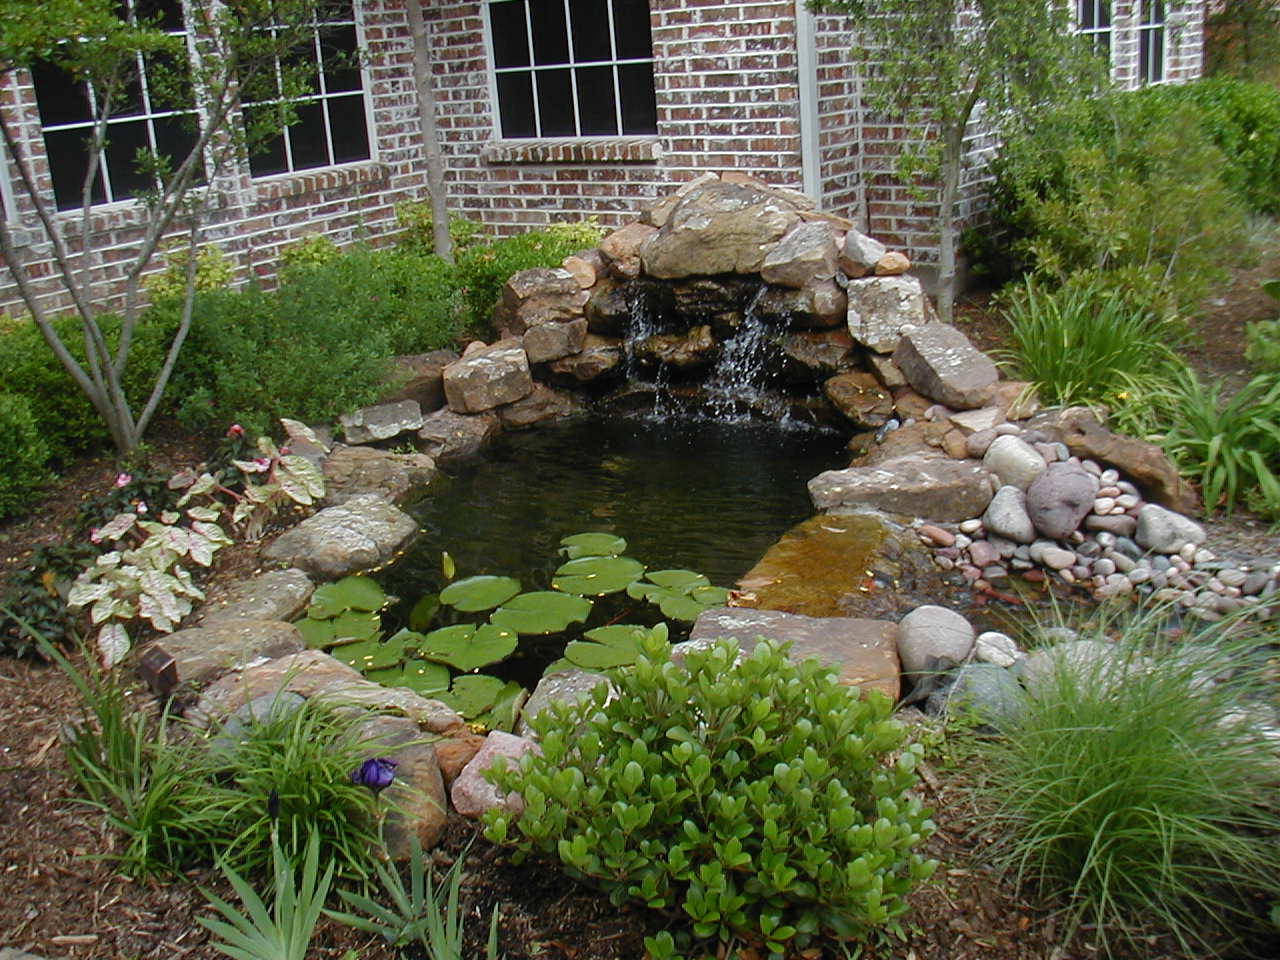 Xterieurdesign about us for Garden with a pond